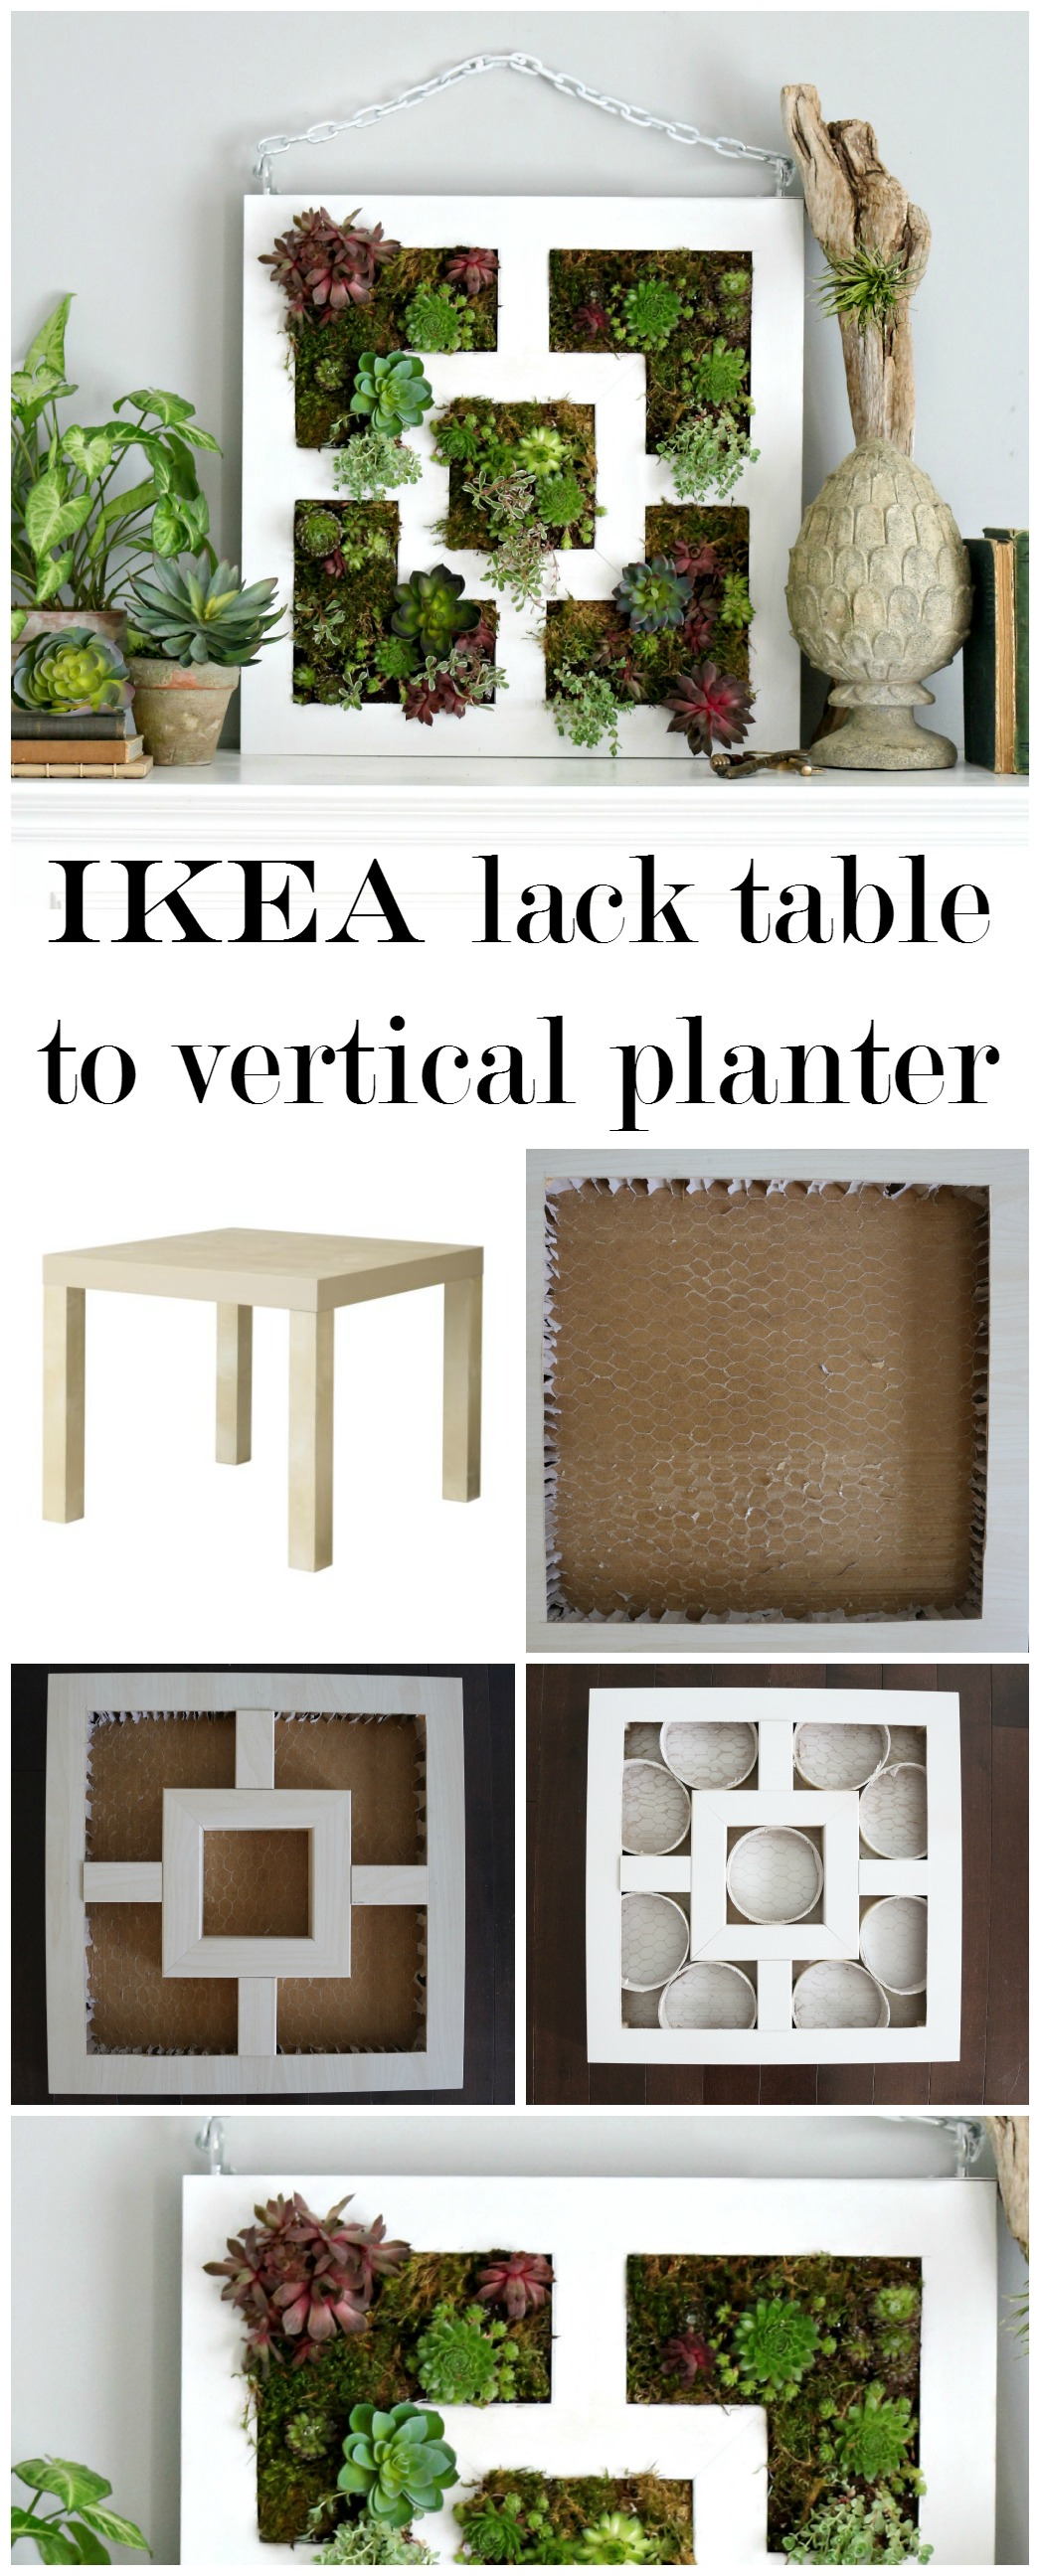 ikealacktabletoverticalplantercraftberrybush